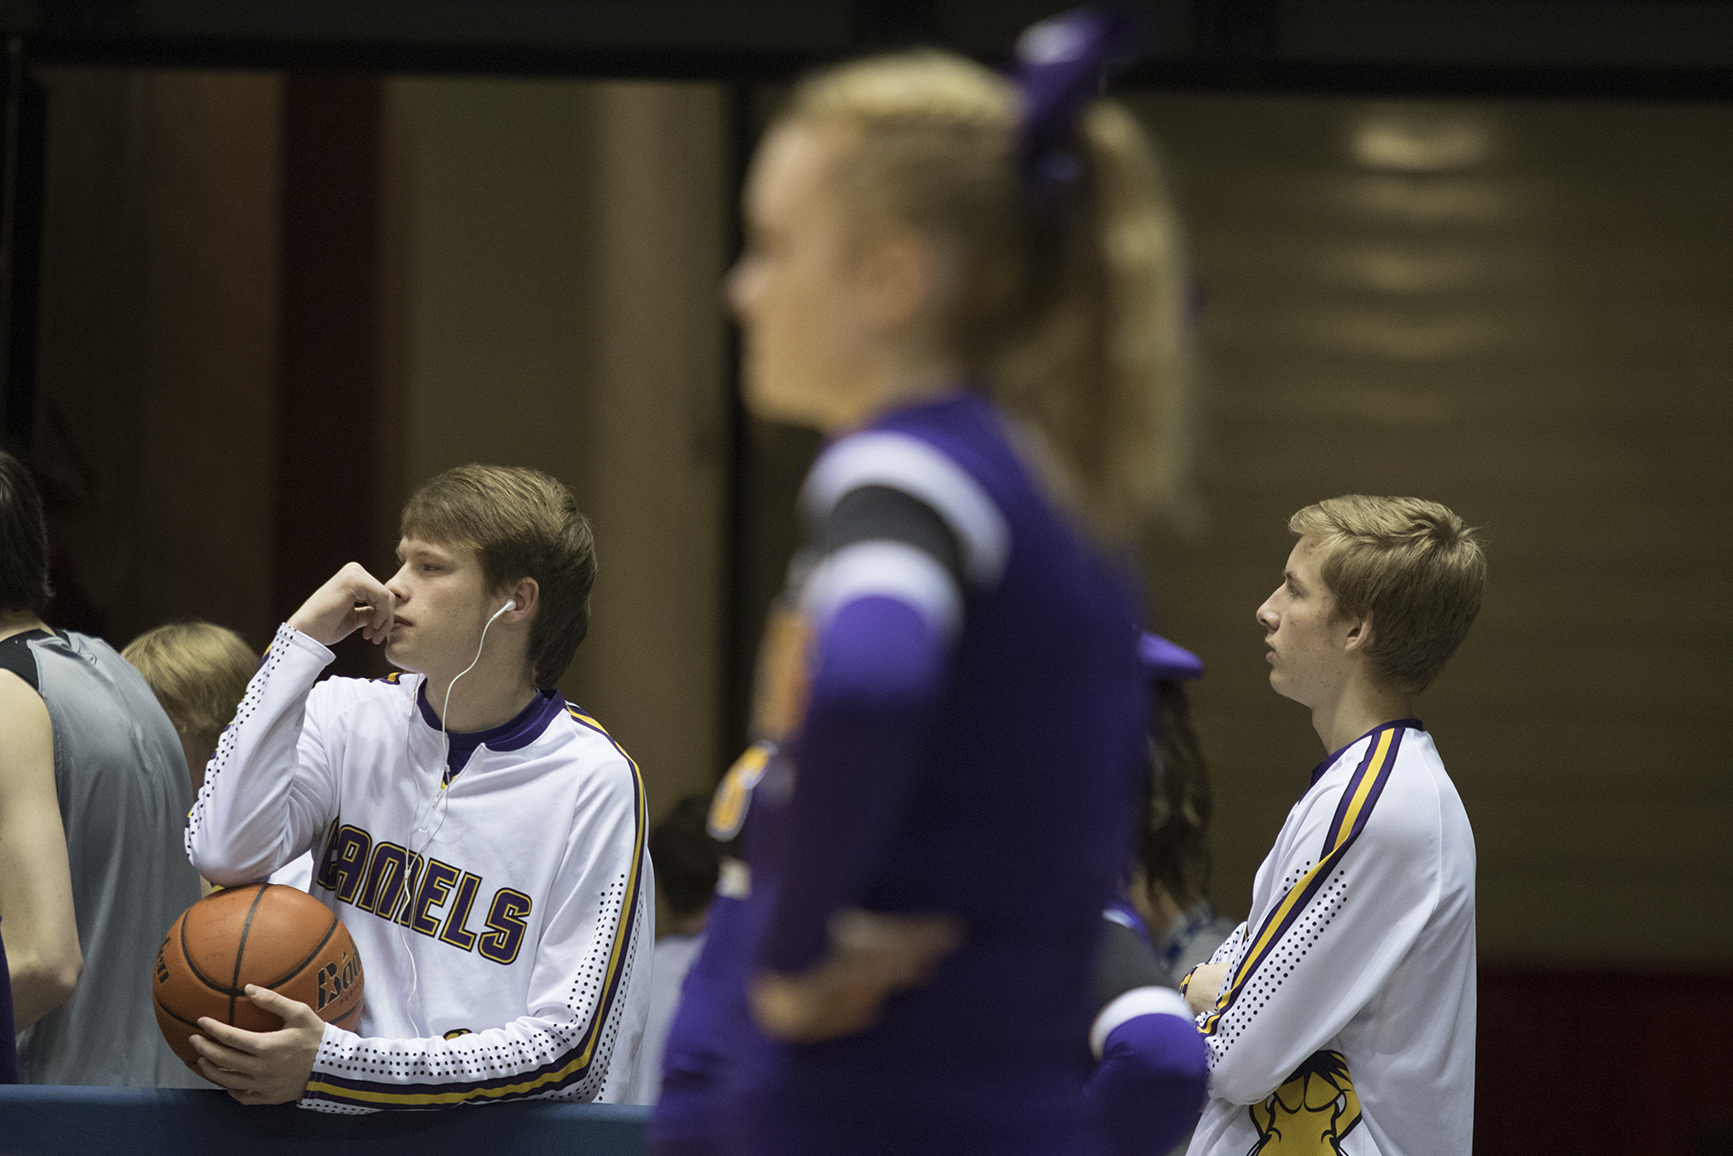 Gillette senior Dalton Holst, left, watches the Camel girls play in the semifinals of the girls 3A state basketball tournament Friday night at the Casper Event Center. Gillette beat Cheyenne East 58-46 and will play Natrona for the title Saturday evening.